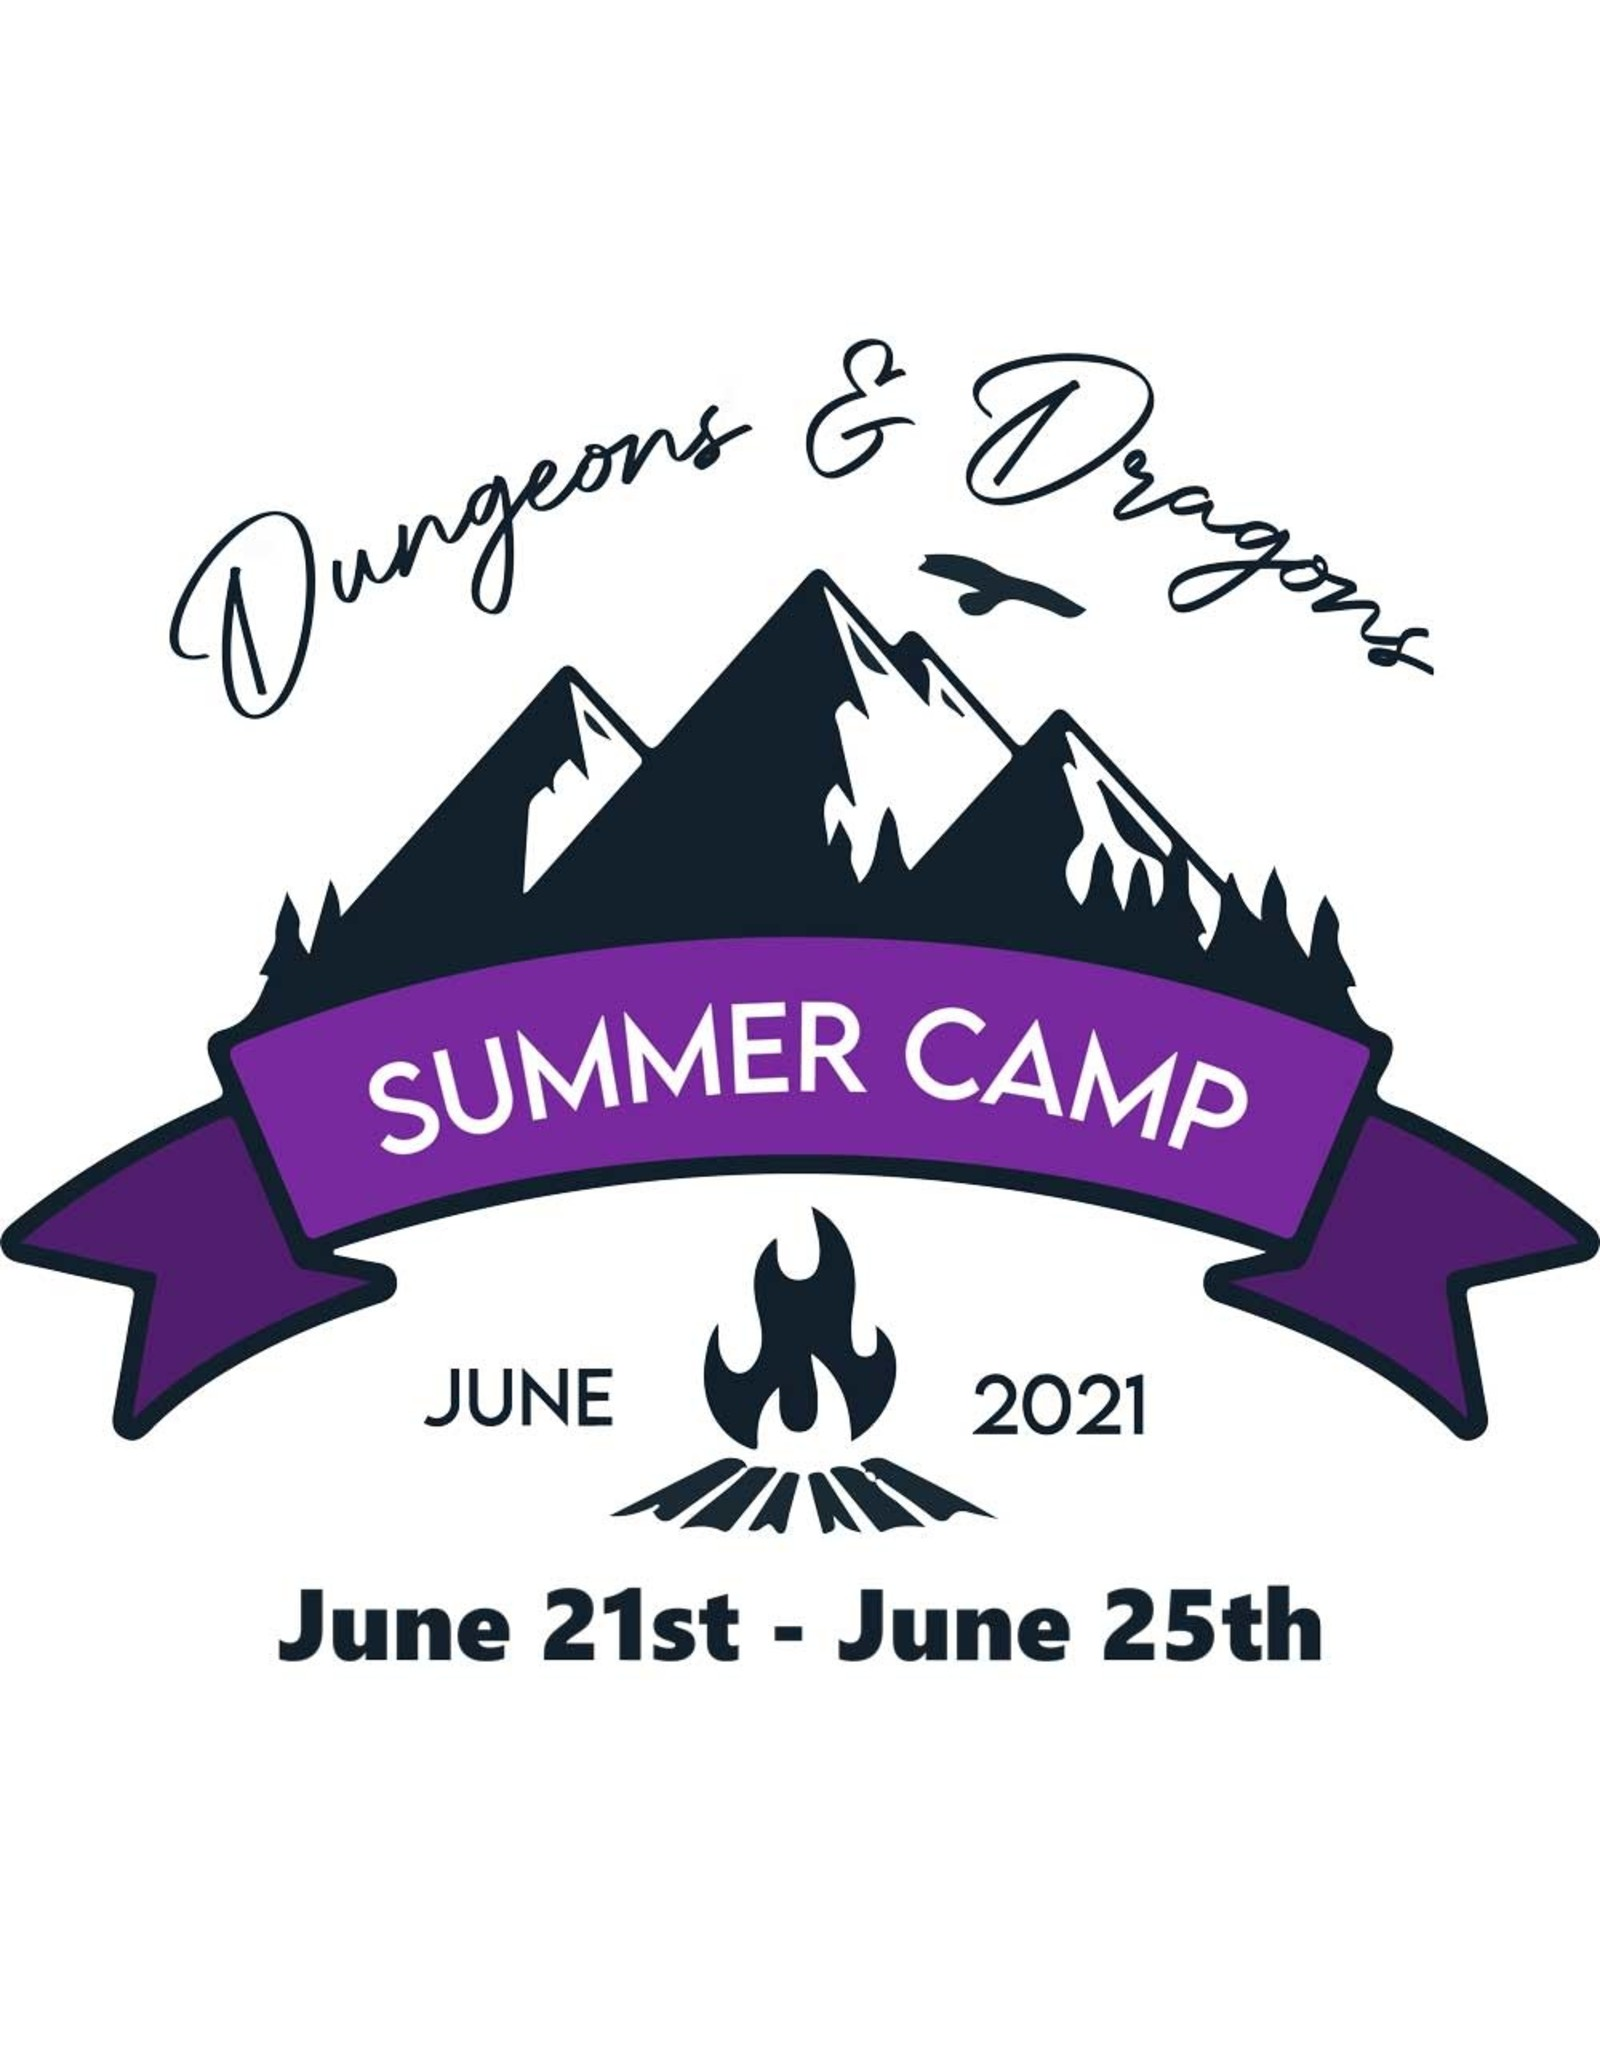 SUMMER CAMP JUNE 21ST - 25TH